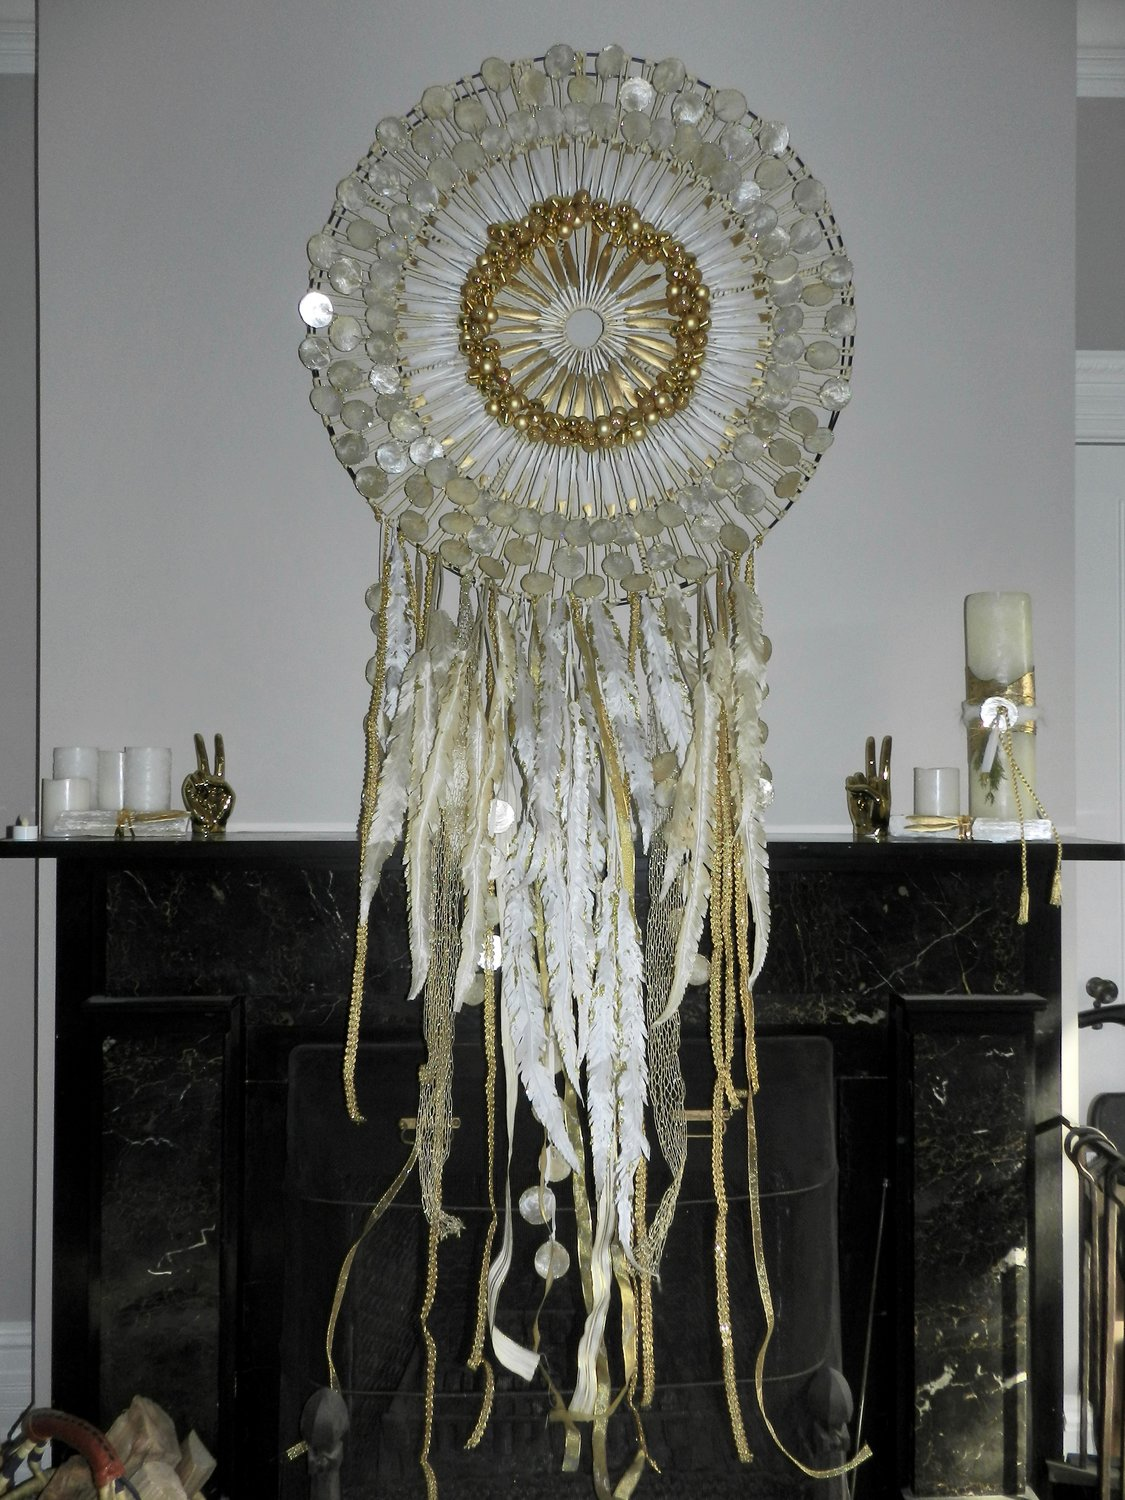 At the center of Wehbeh's living room is a handmade dream catcher. It was made by her event designer, Robert D'Alessandro, out of silk feathers and capiz shells.